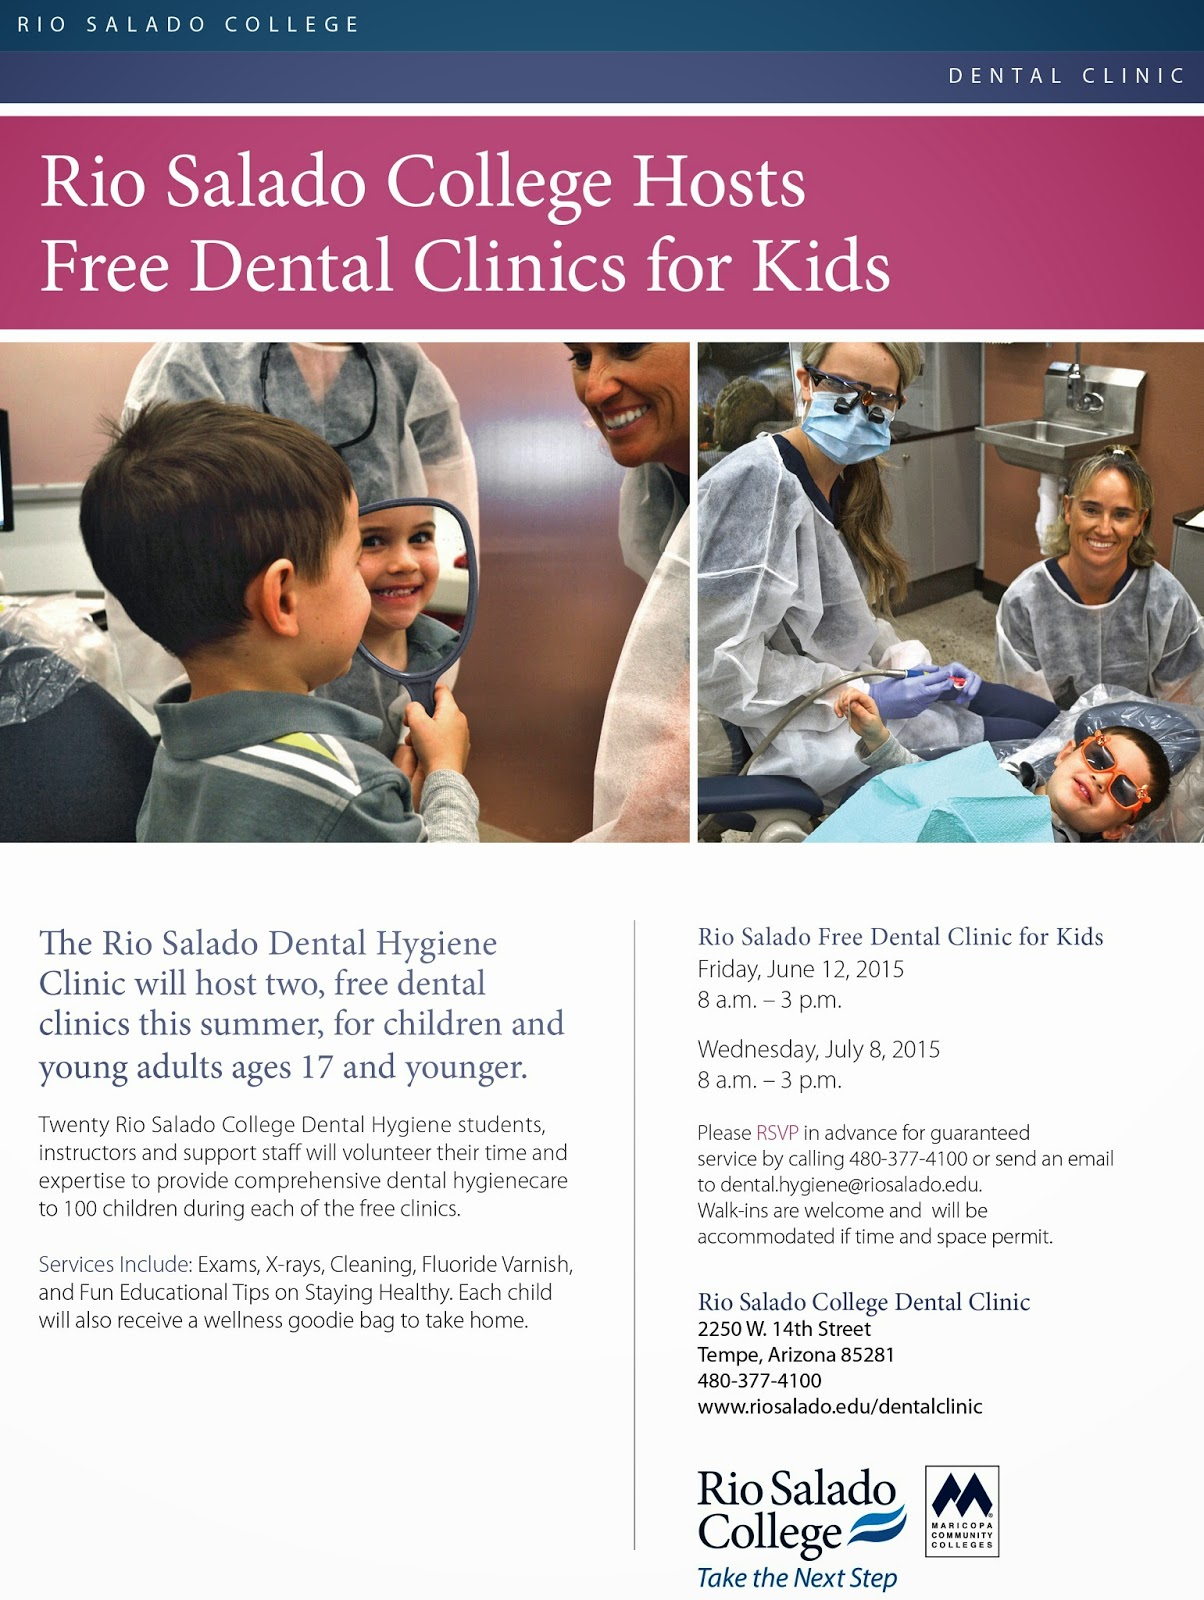 Rio Salado Dental Clinic flier.  Full text featured in blow, below image.  Shots of a young child patient being cared for by Rio Salado Dental students.